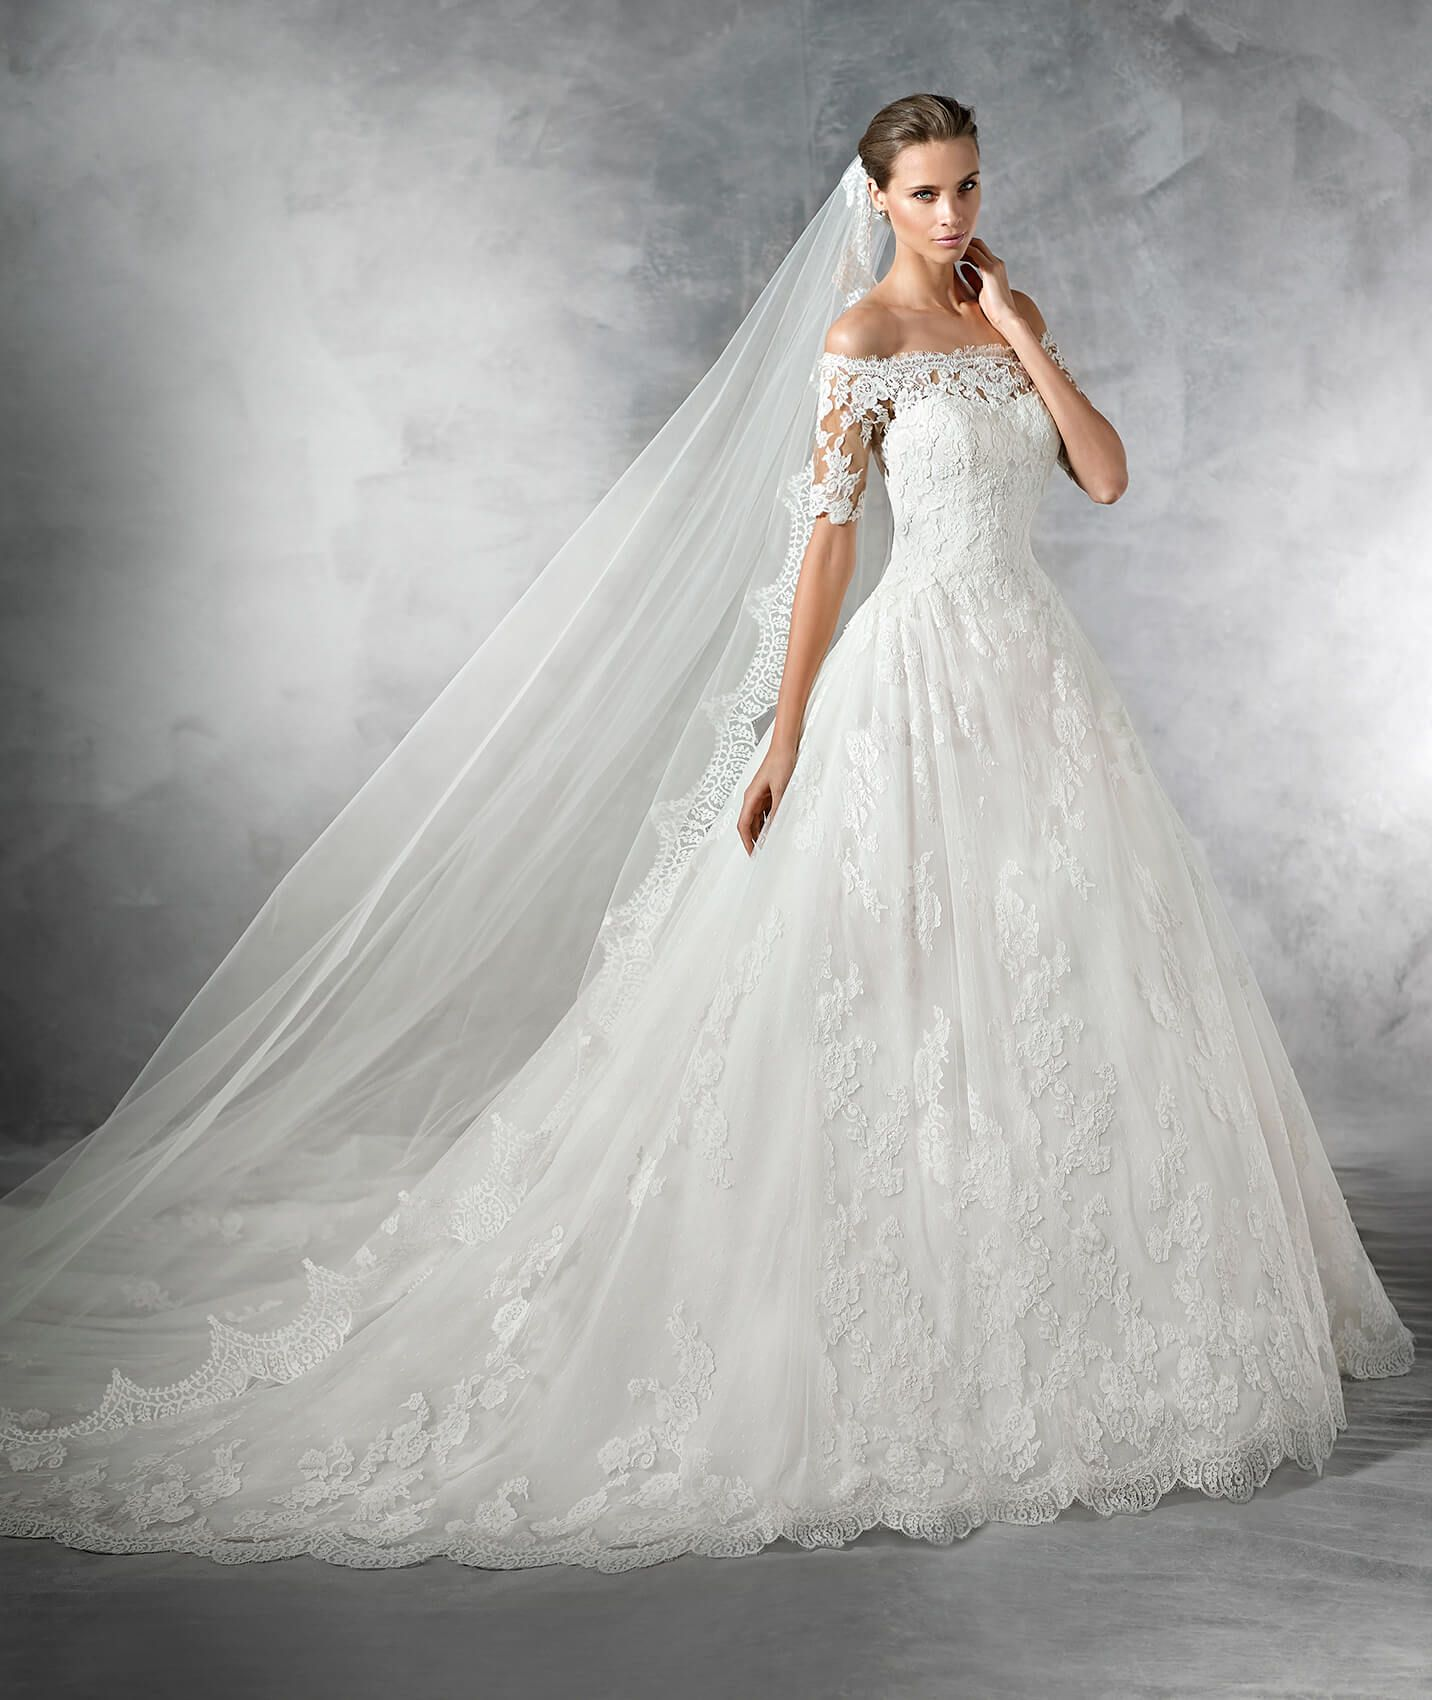 PLEASANT - Vintage-inspired wedding dress in tulle with a low waist ...